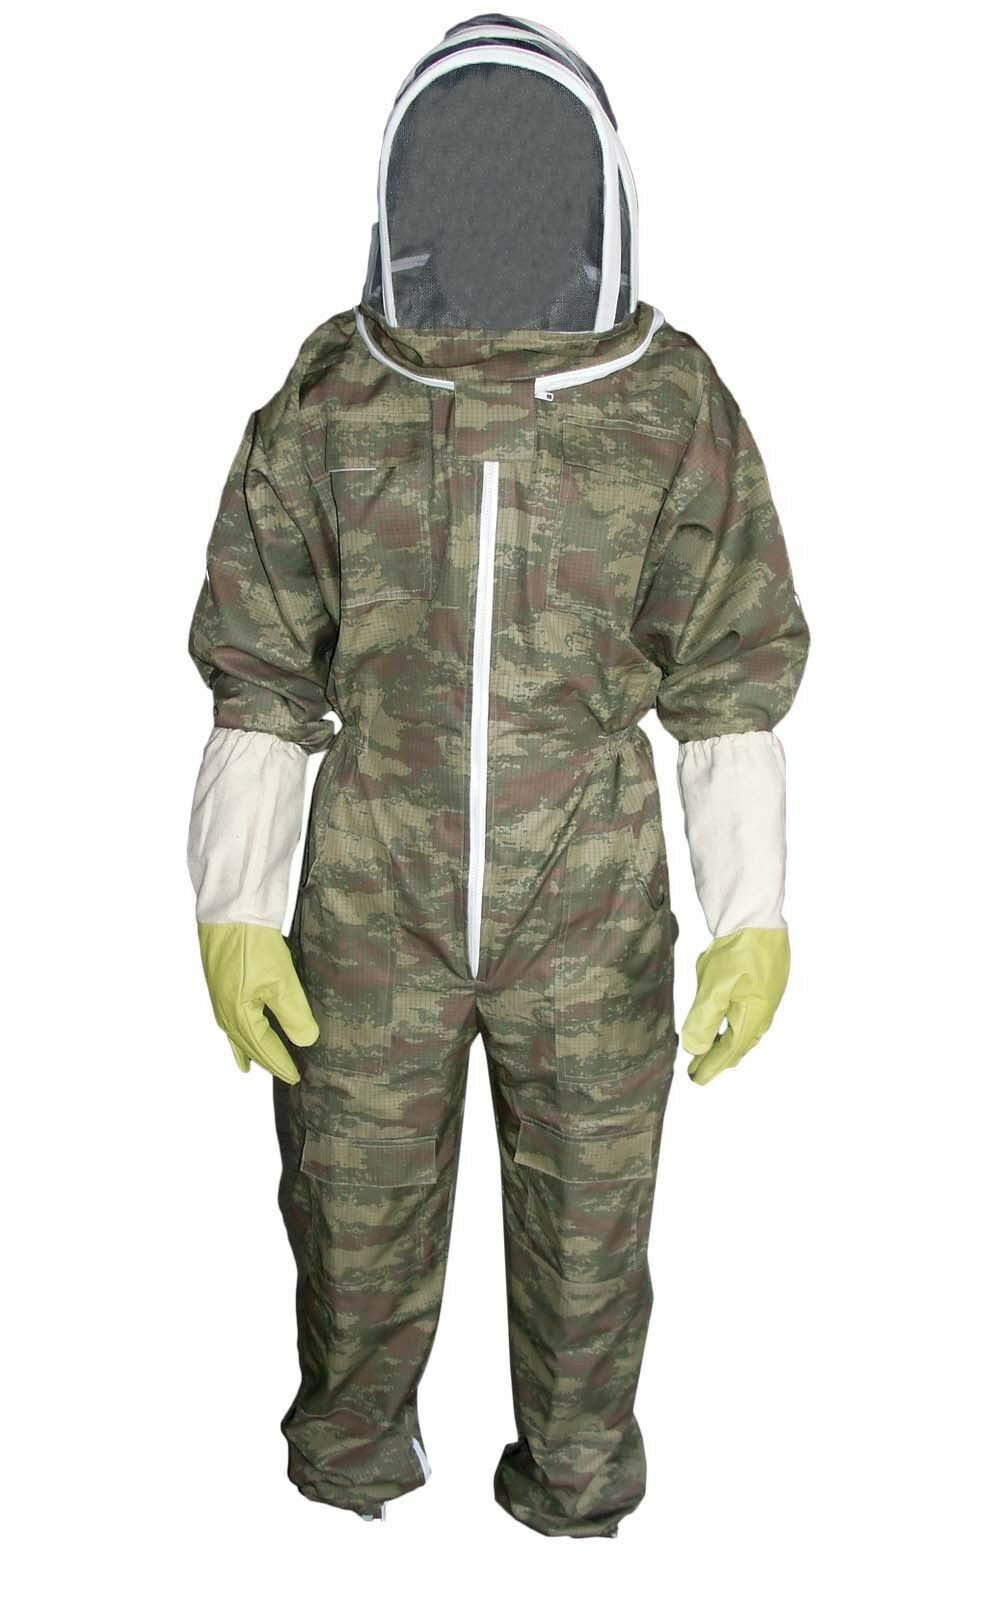 Kids Beekeeping Suit,children Beekeeper Suit, Veil Free Glove Camouflage